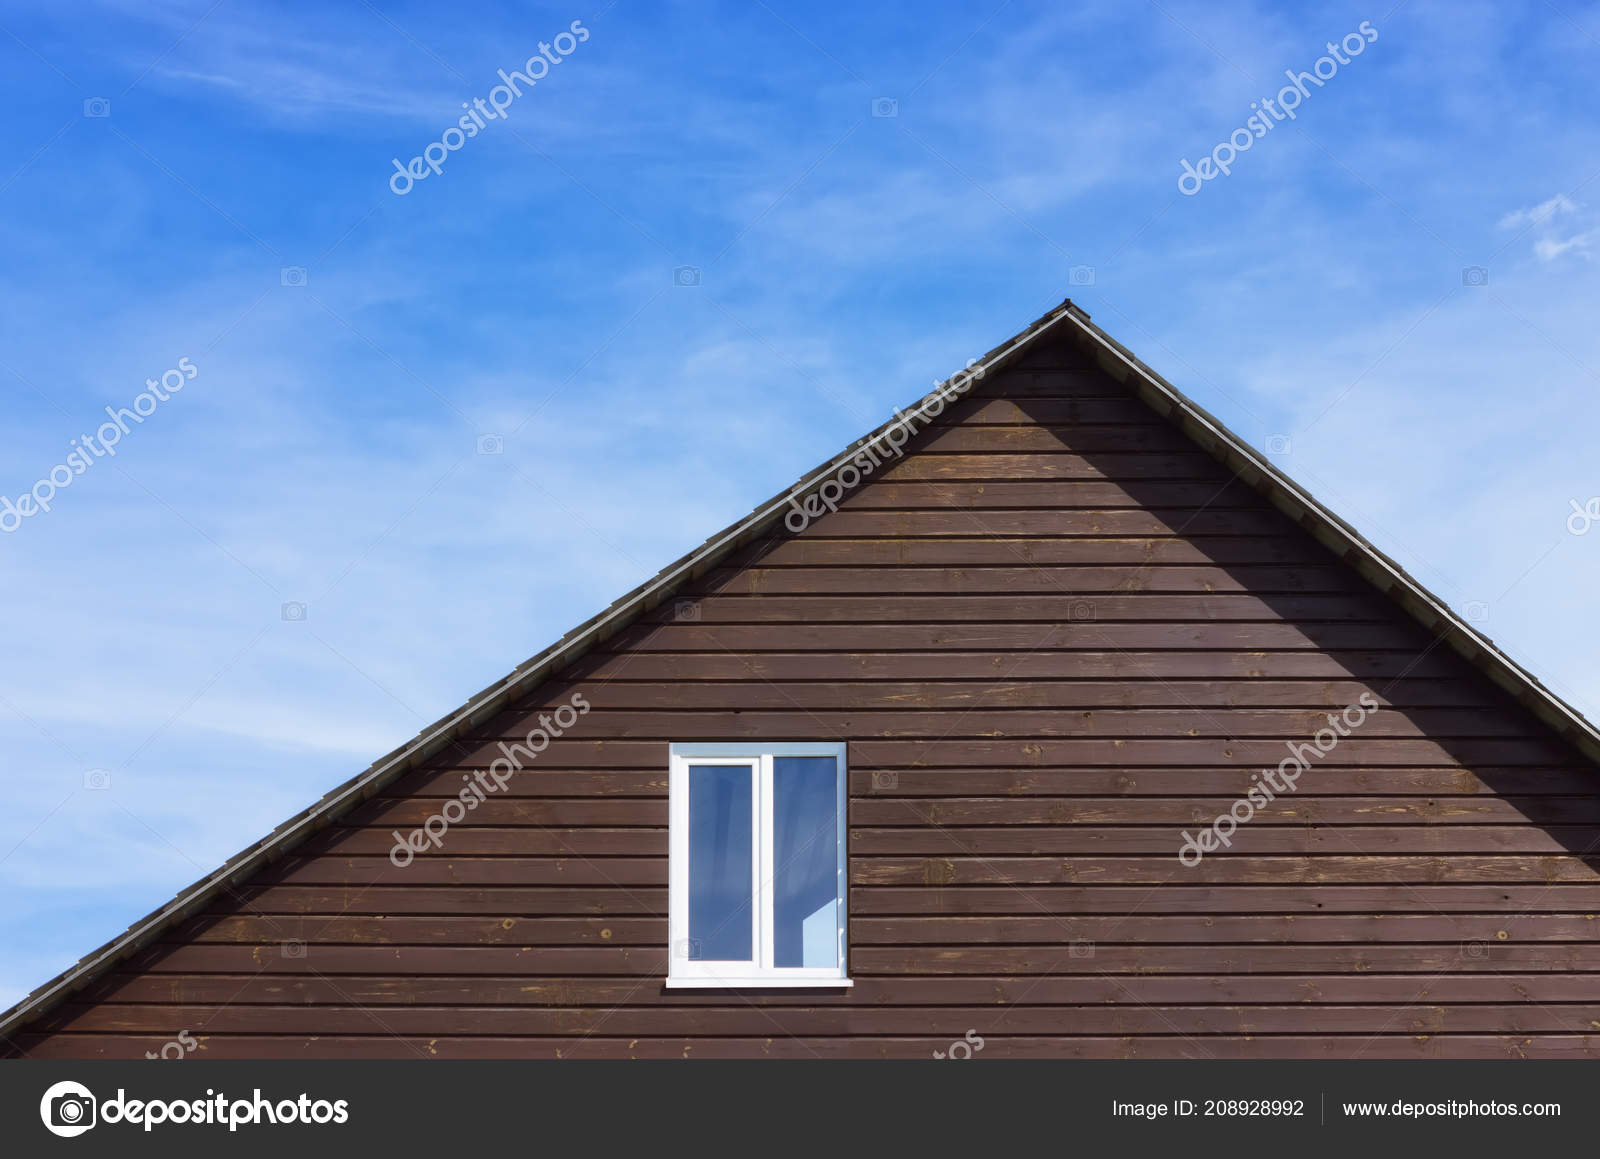 Top Part Wooden Plank House Plastic Window Gable Roof Blue Stock